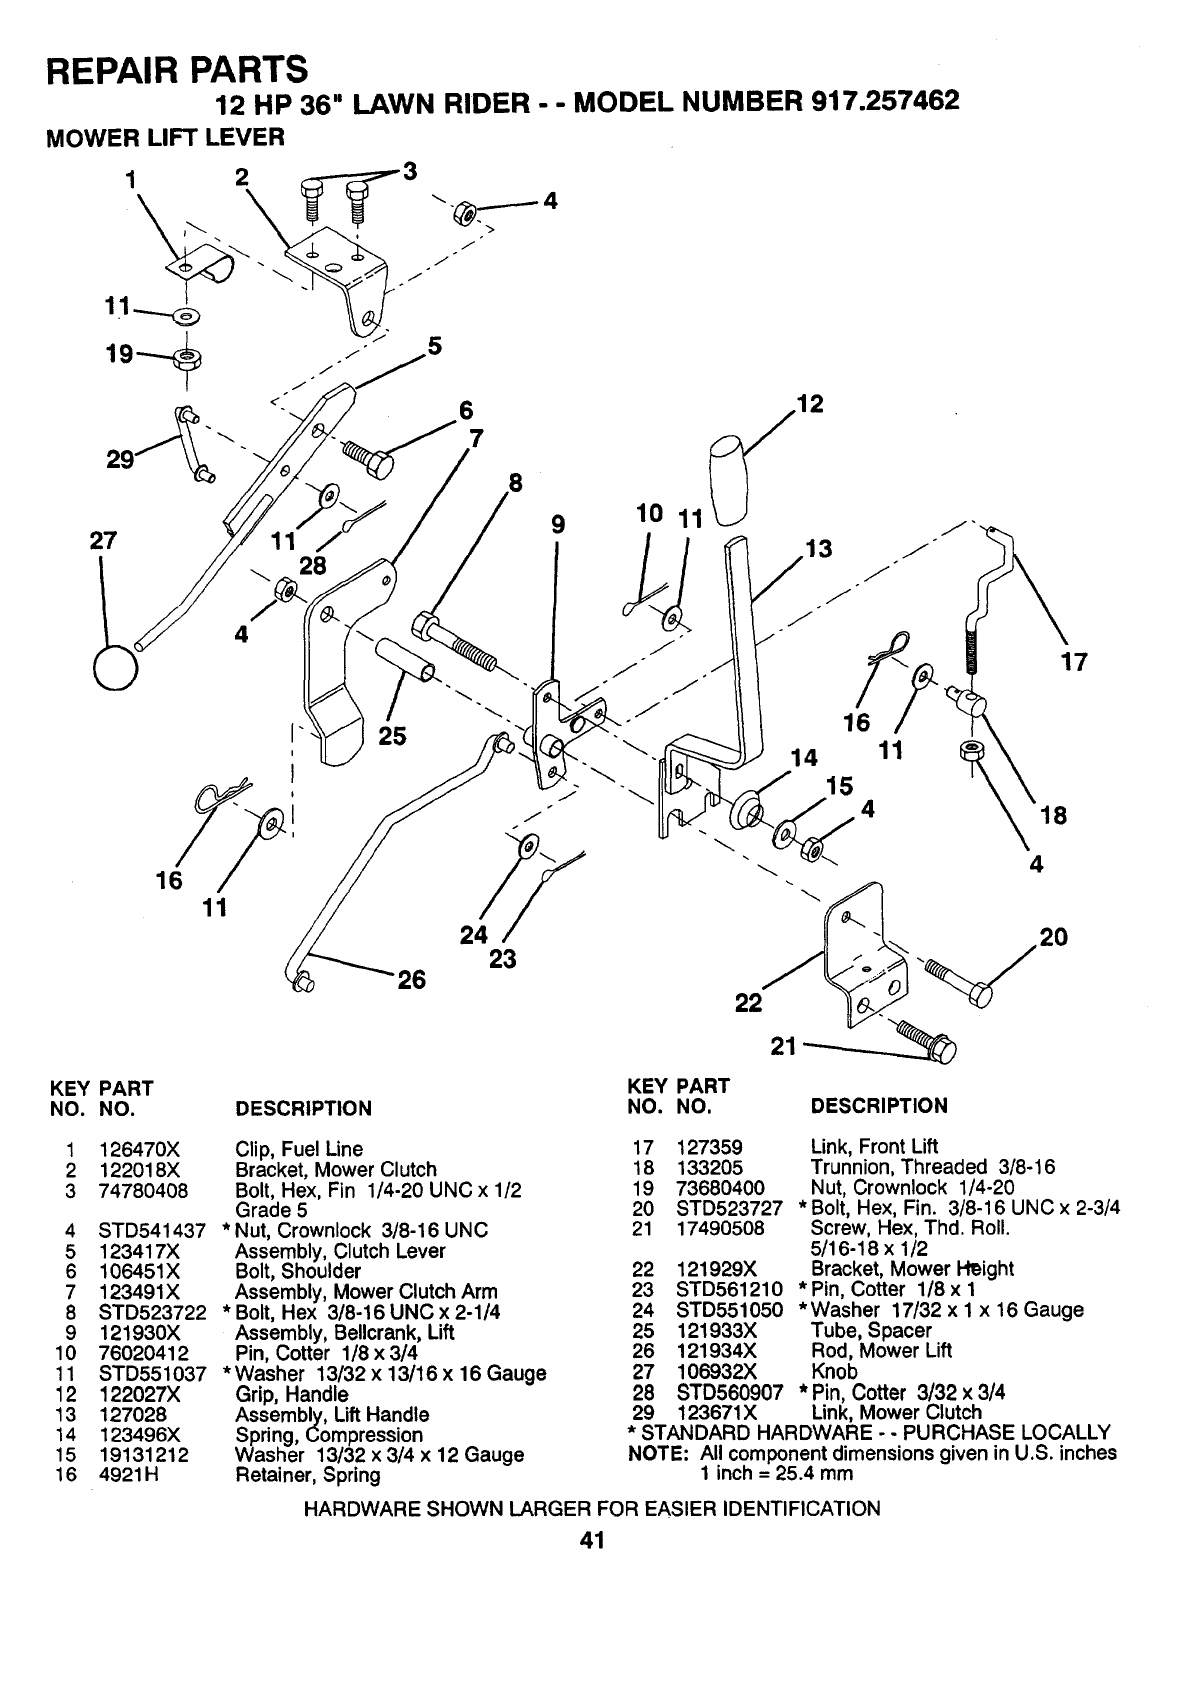 Page 41 of Sears Lawn Mower 917.257462 User Guide